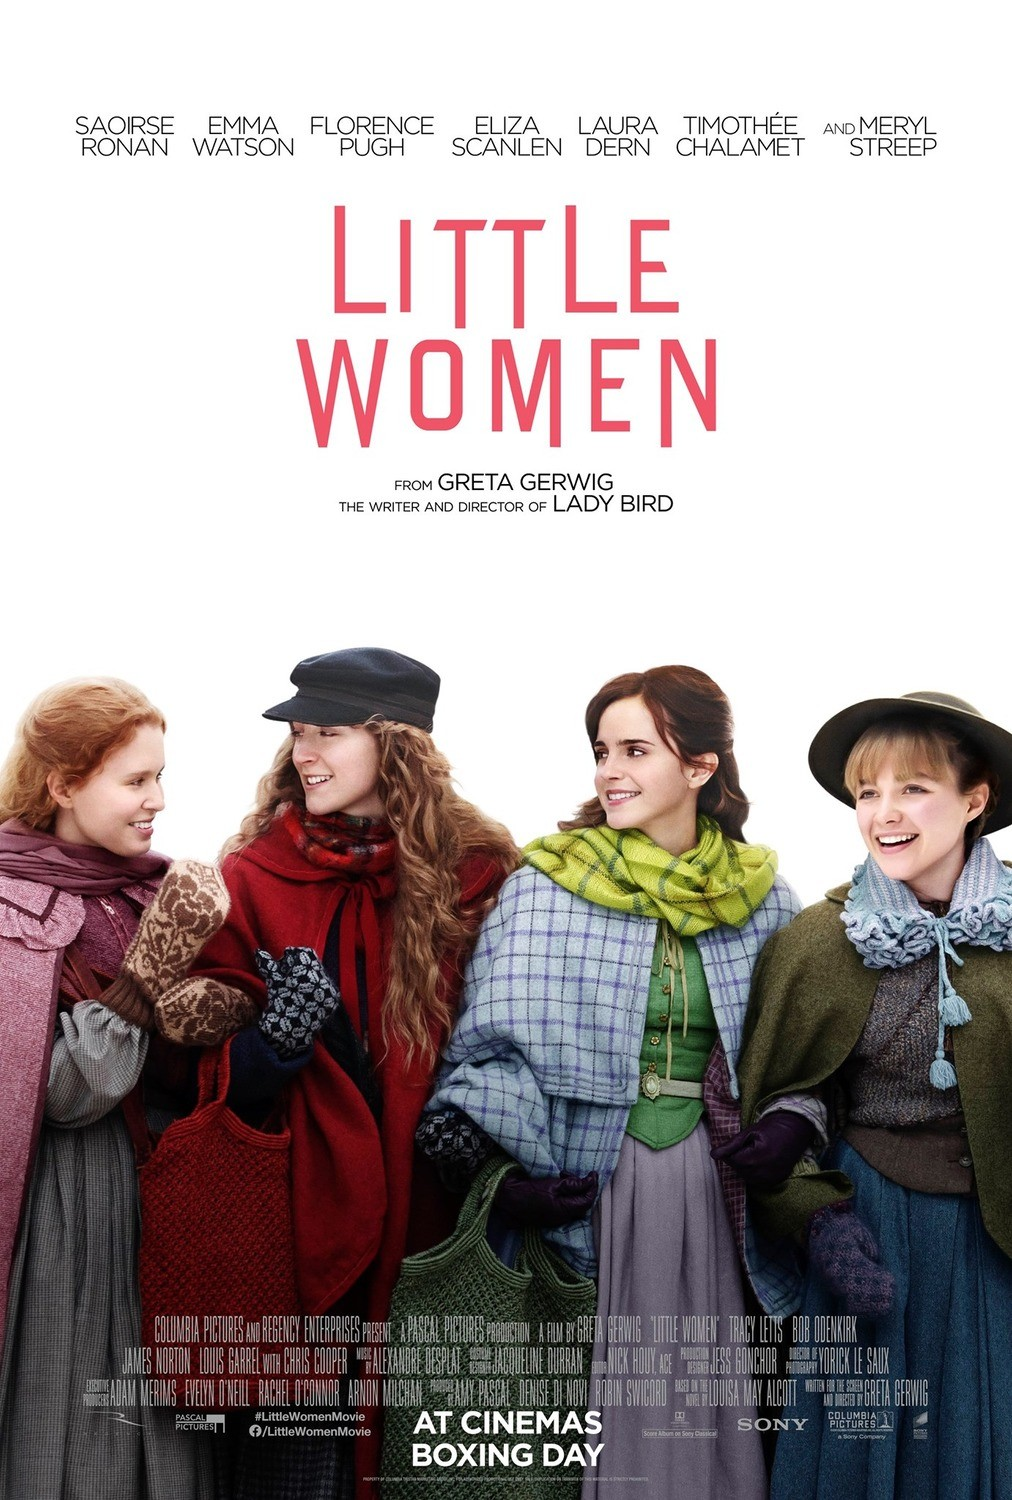 LITTLE WOMEN [2019]